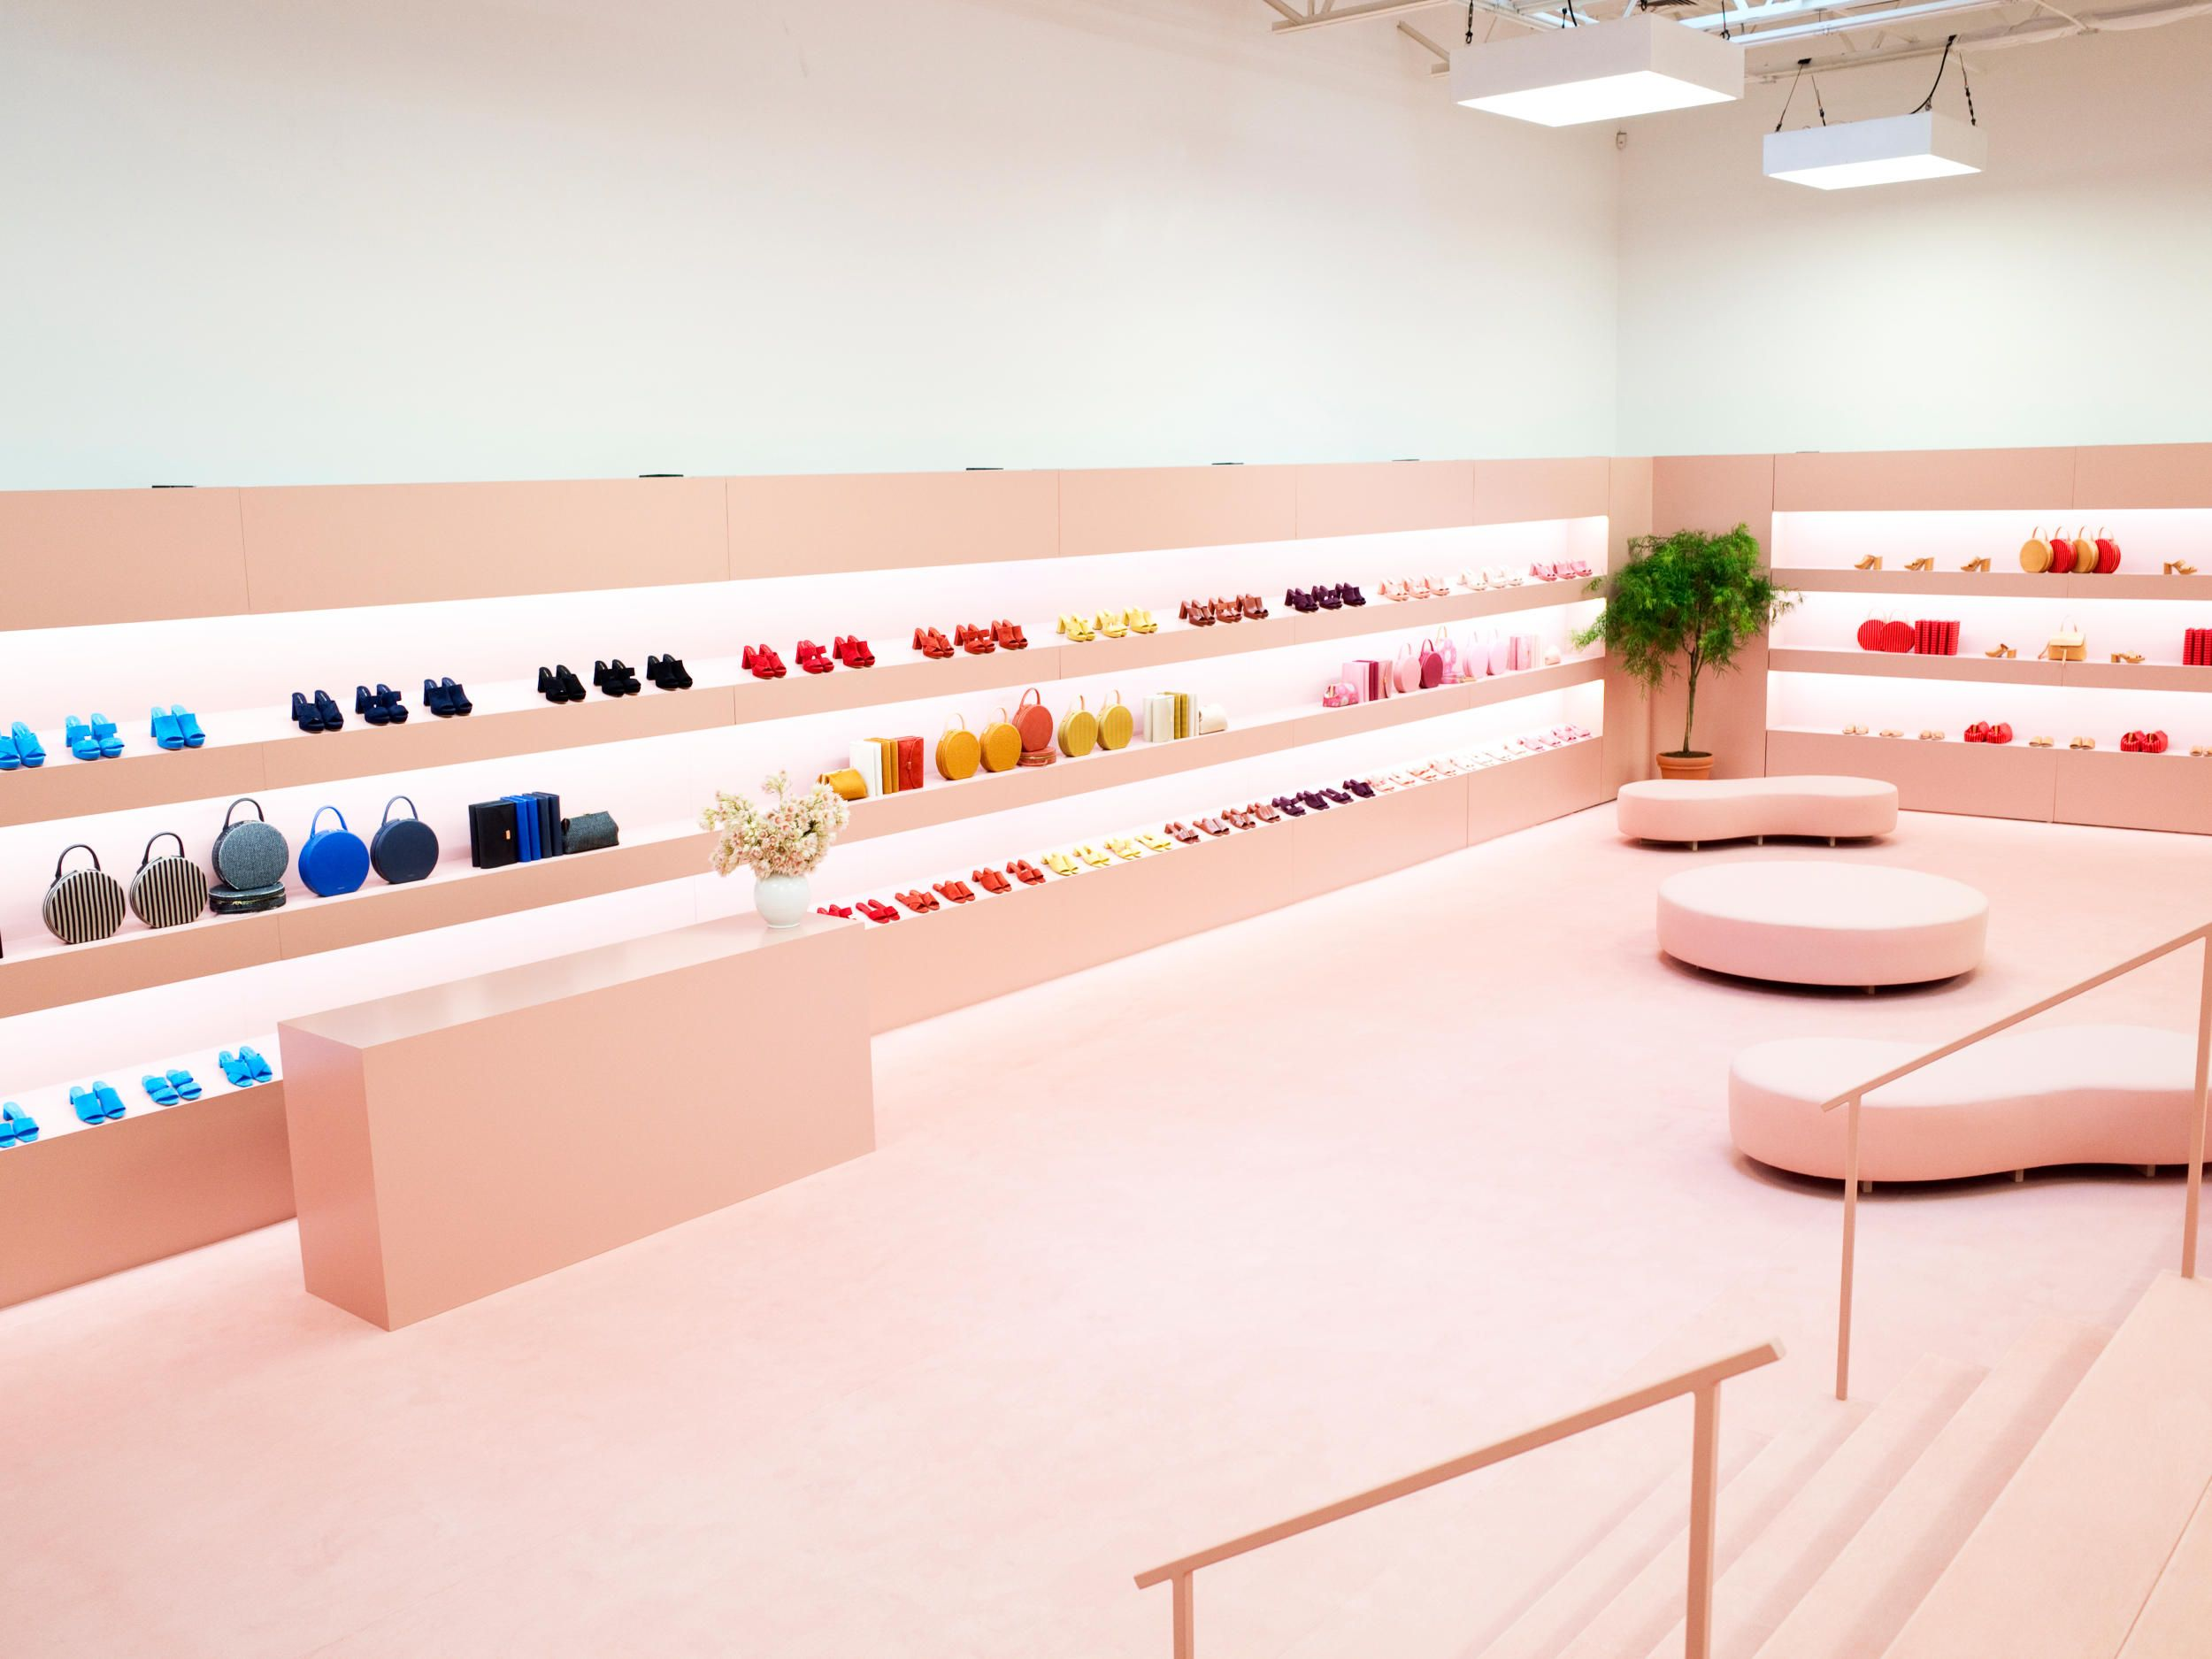 Store by riis retail aarhus denmark 187 retail design blog - Mansur Gavriel Introduces Shoes And New Bag Shapes At First Fashion Week Presentation Fashionista